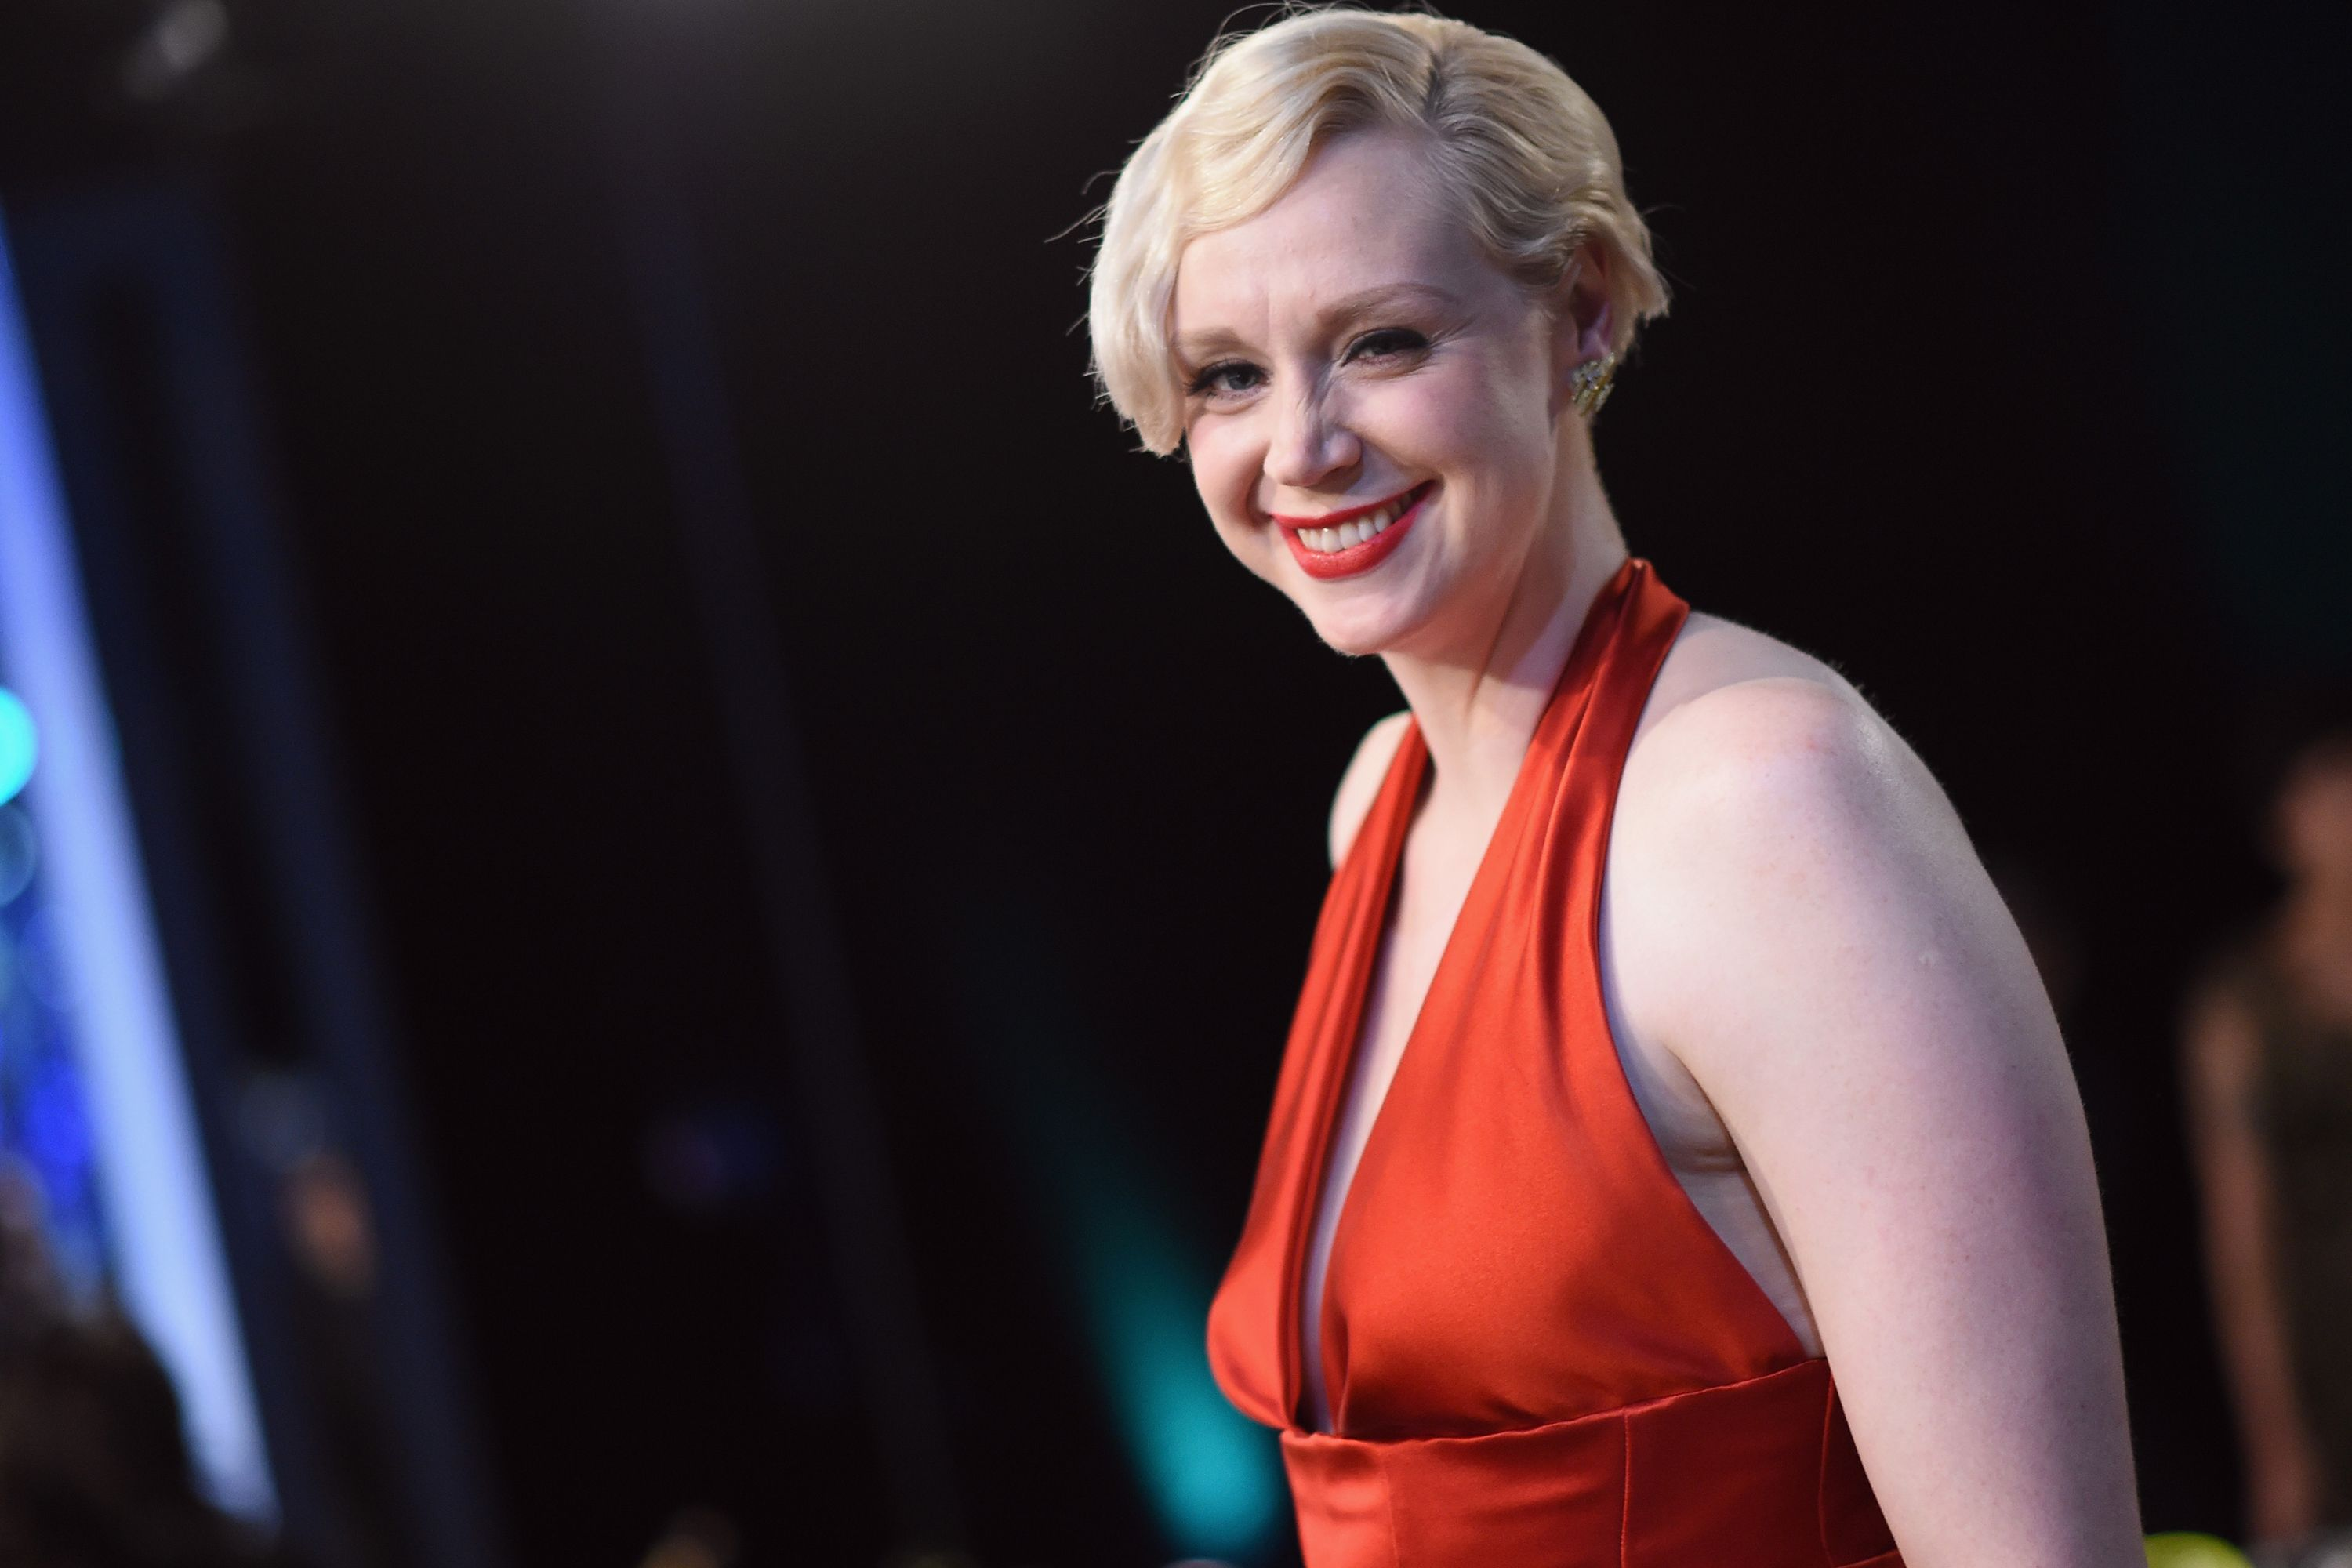 Watch Gwendoline Christie video